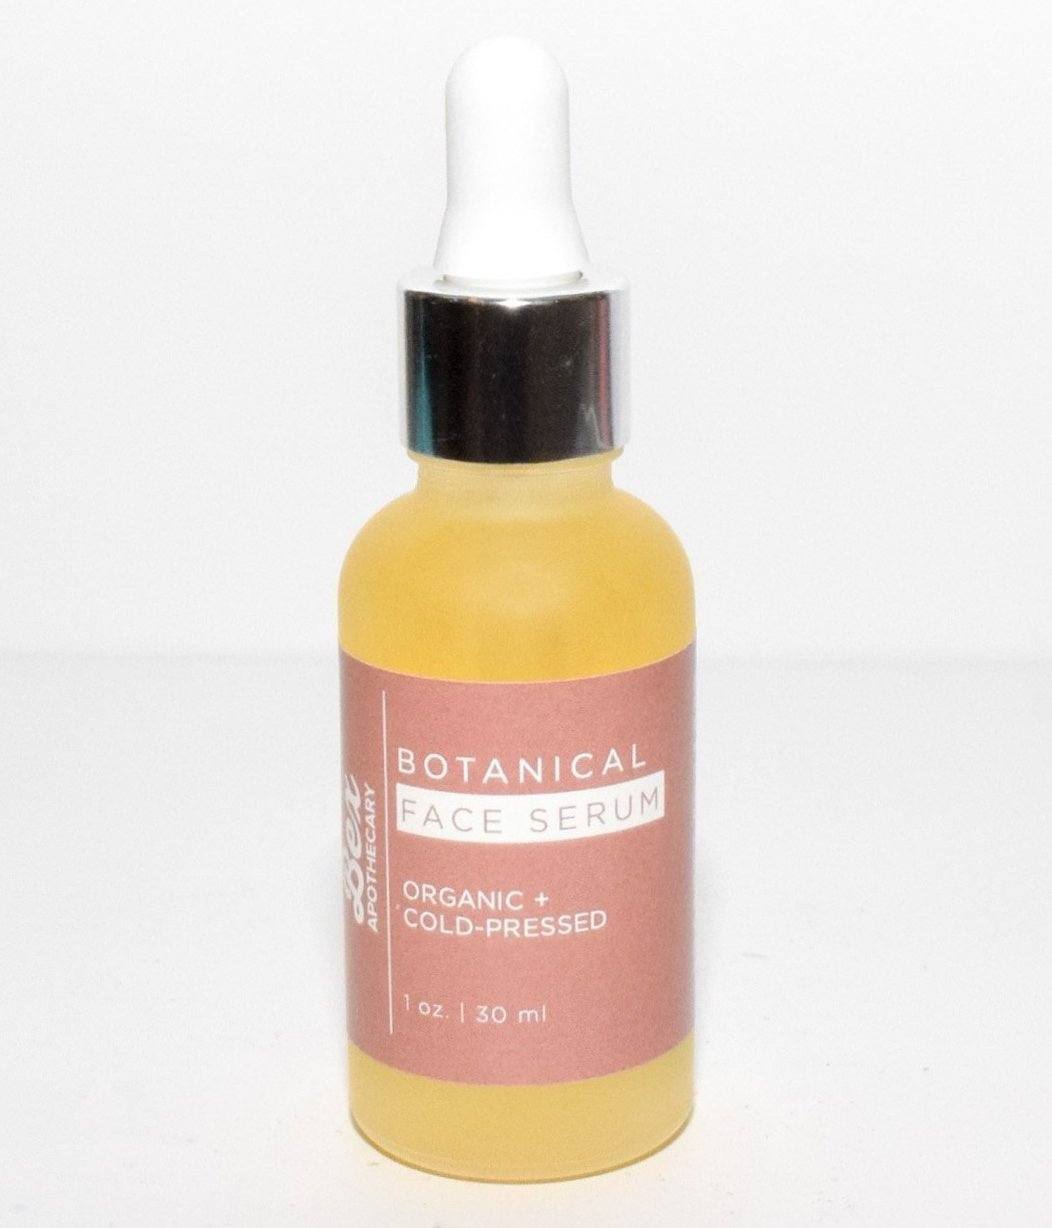 Botanical Face Serum - Bex Apothecary